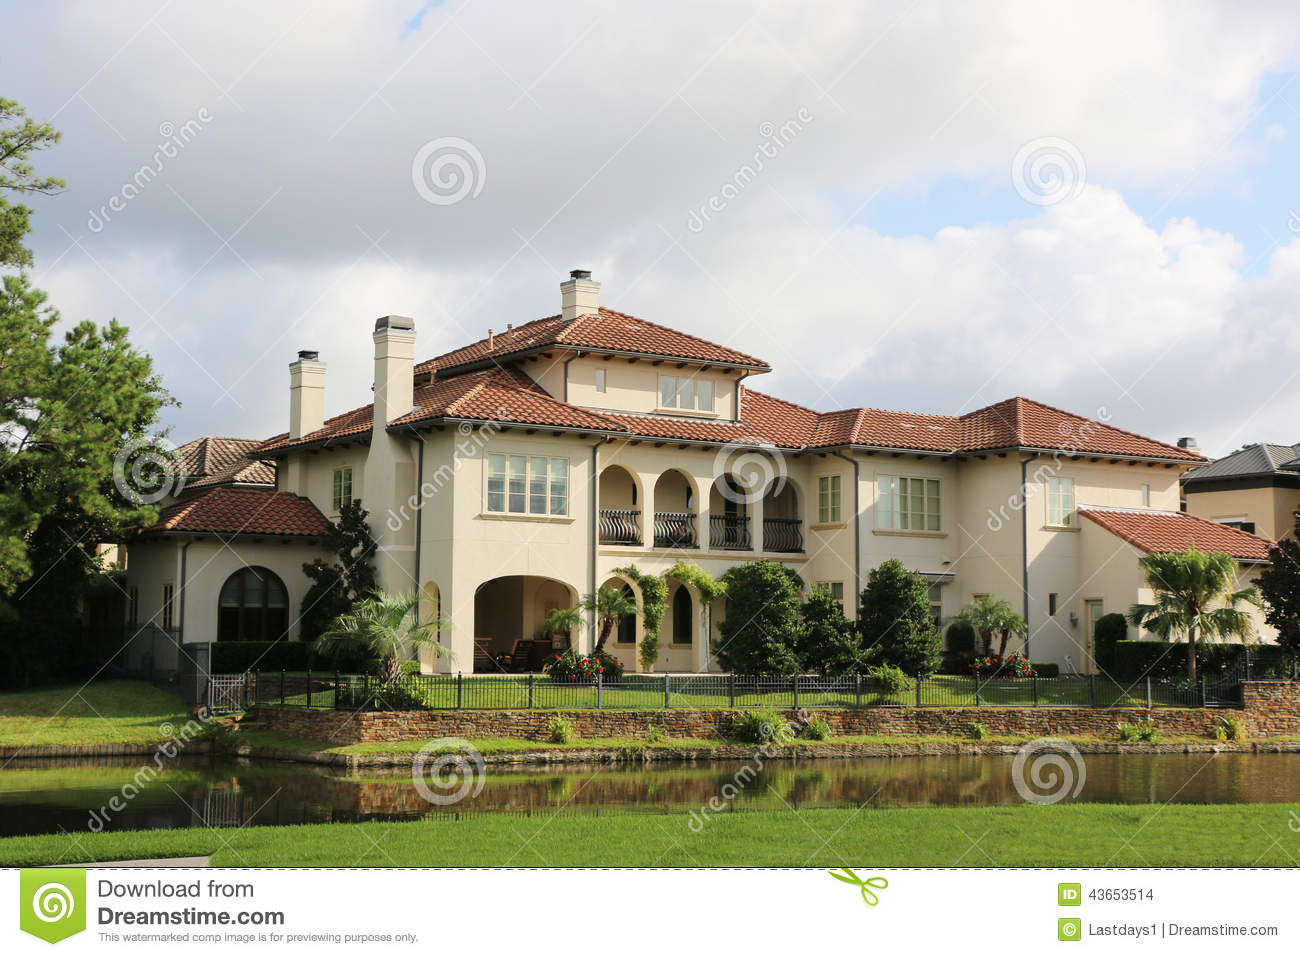 Million dollar homes series stock photography for Beautiful million dollar homes